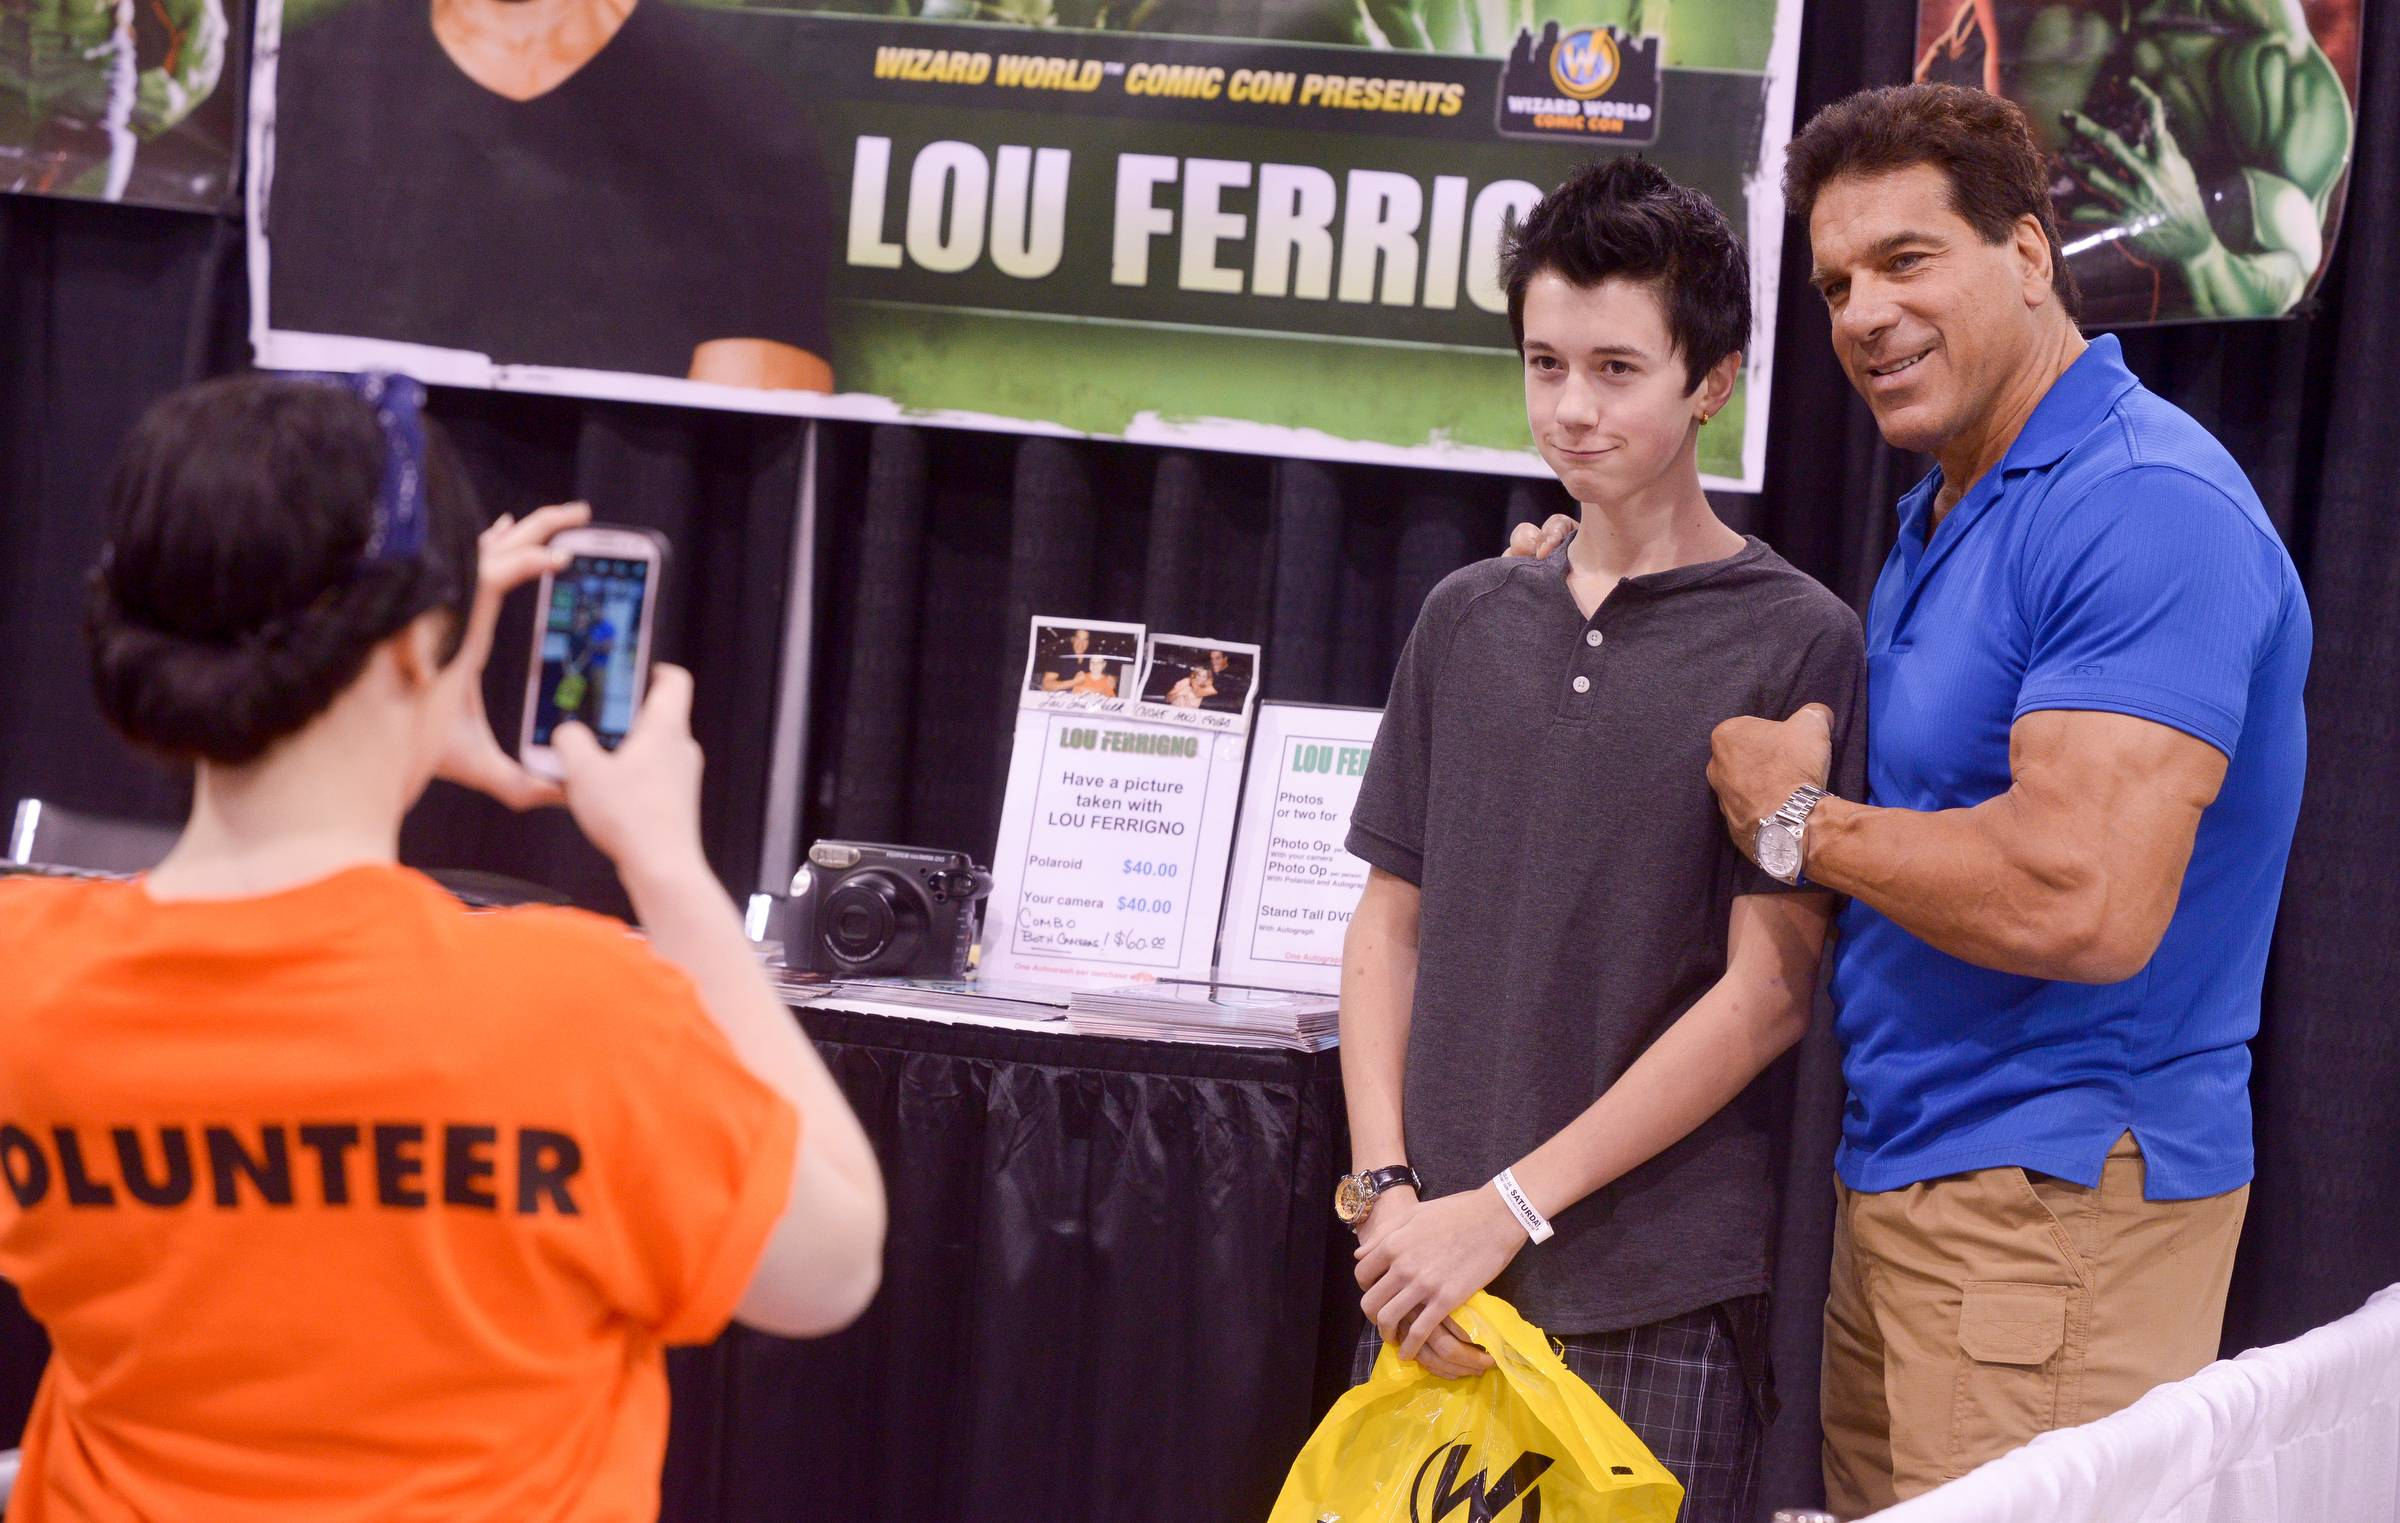 "Noah Fuller, 15 of Tinley Park poses for a photo with Lou Ferrigno, aka the ""Hulk"" from the 1970s TV show during his visit to the Comic Con convention at the Donald E. Stephens Convention Center in Rosemont. Fuller said his dad used to watch the TV show when he was a kid."